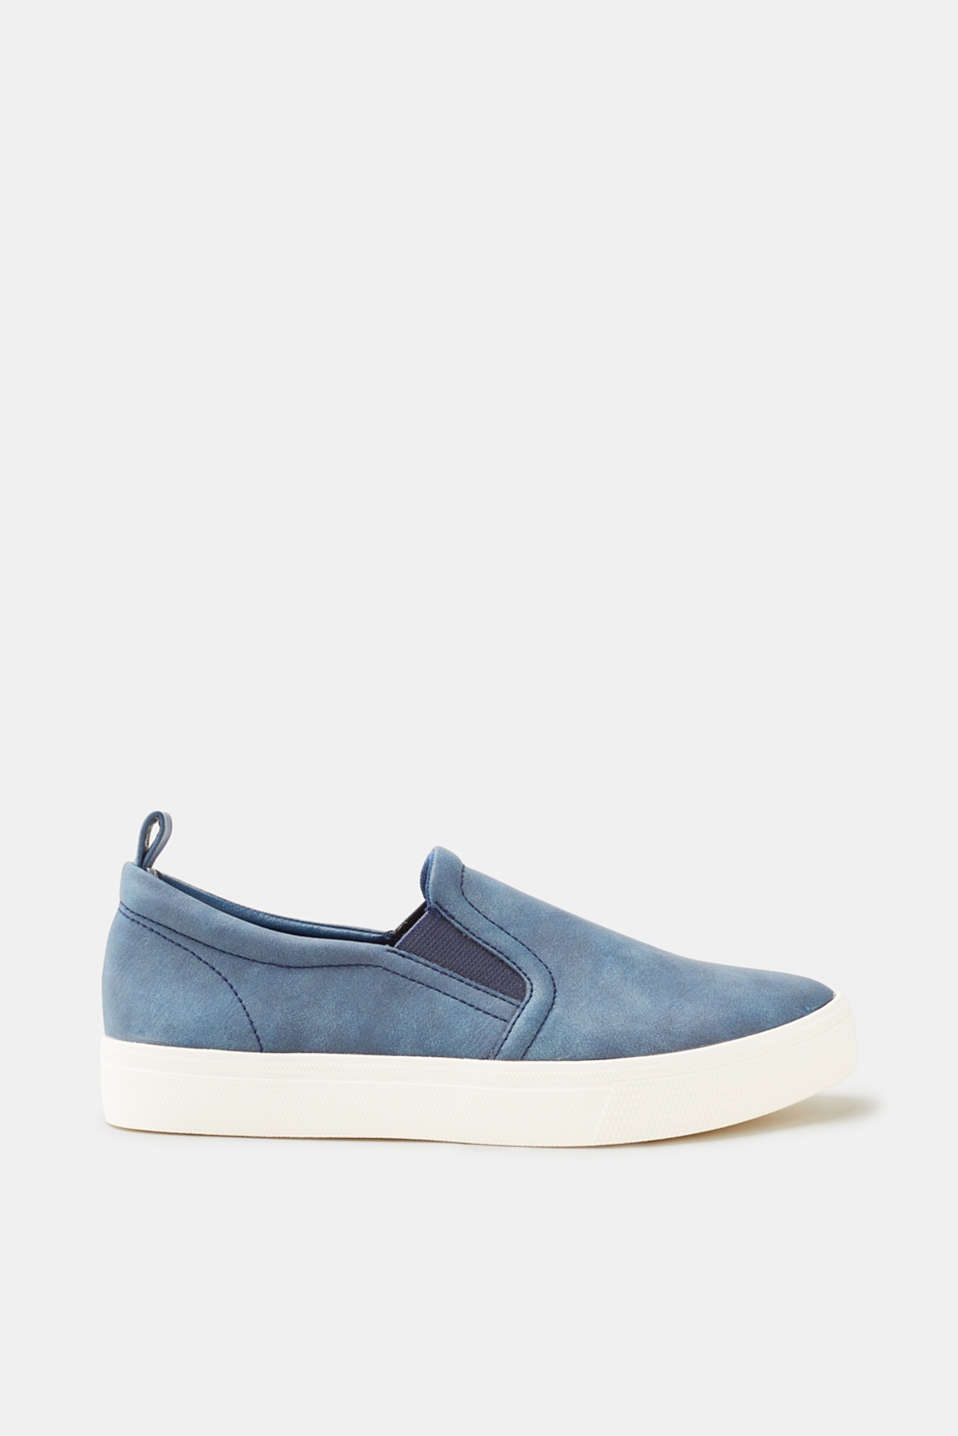 Esprit - Slip on-sneakers i glat skind-look